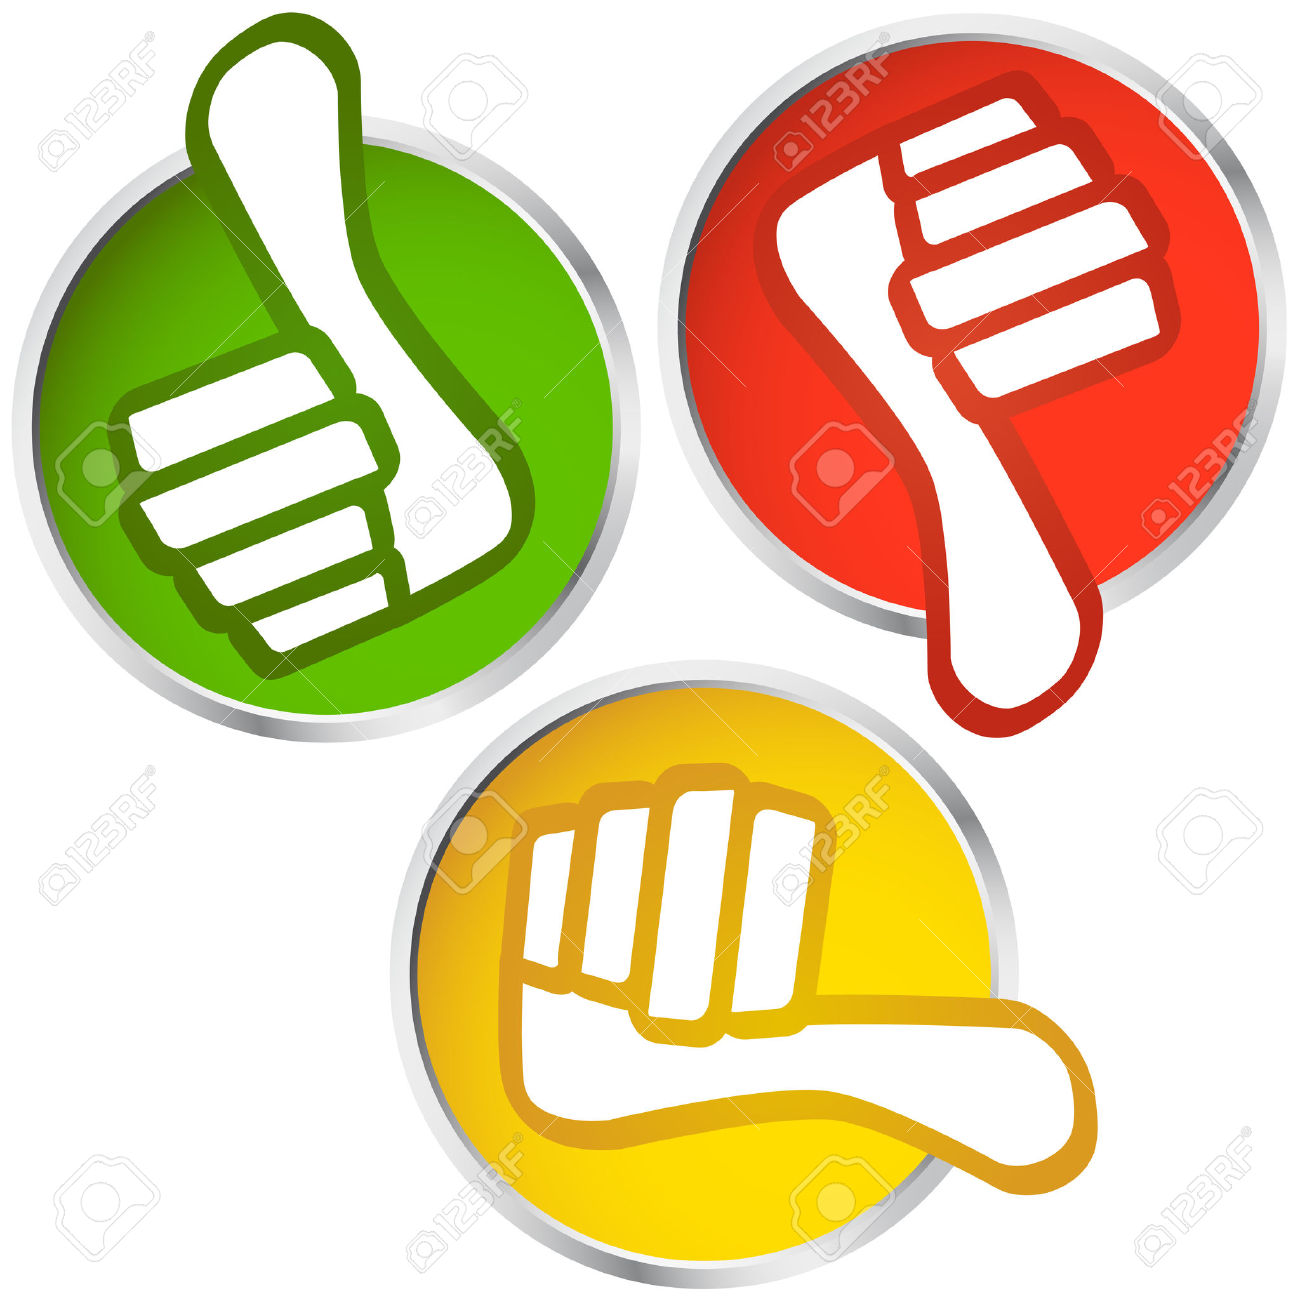 Clipart thumbs up microsoft image royalty free library Clipart thumbs sideways - ClipartFox image royalty free library